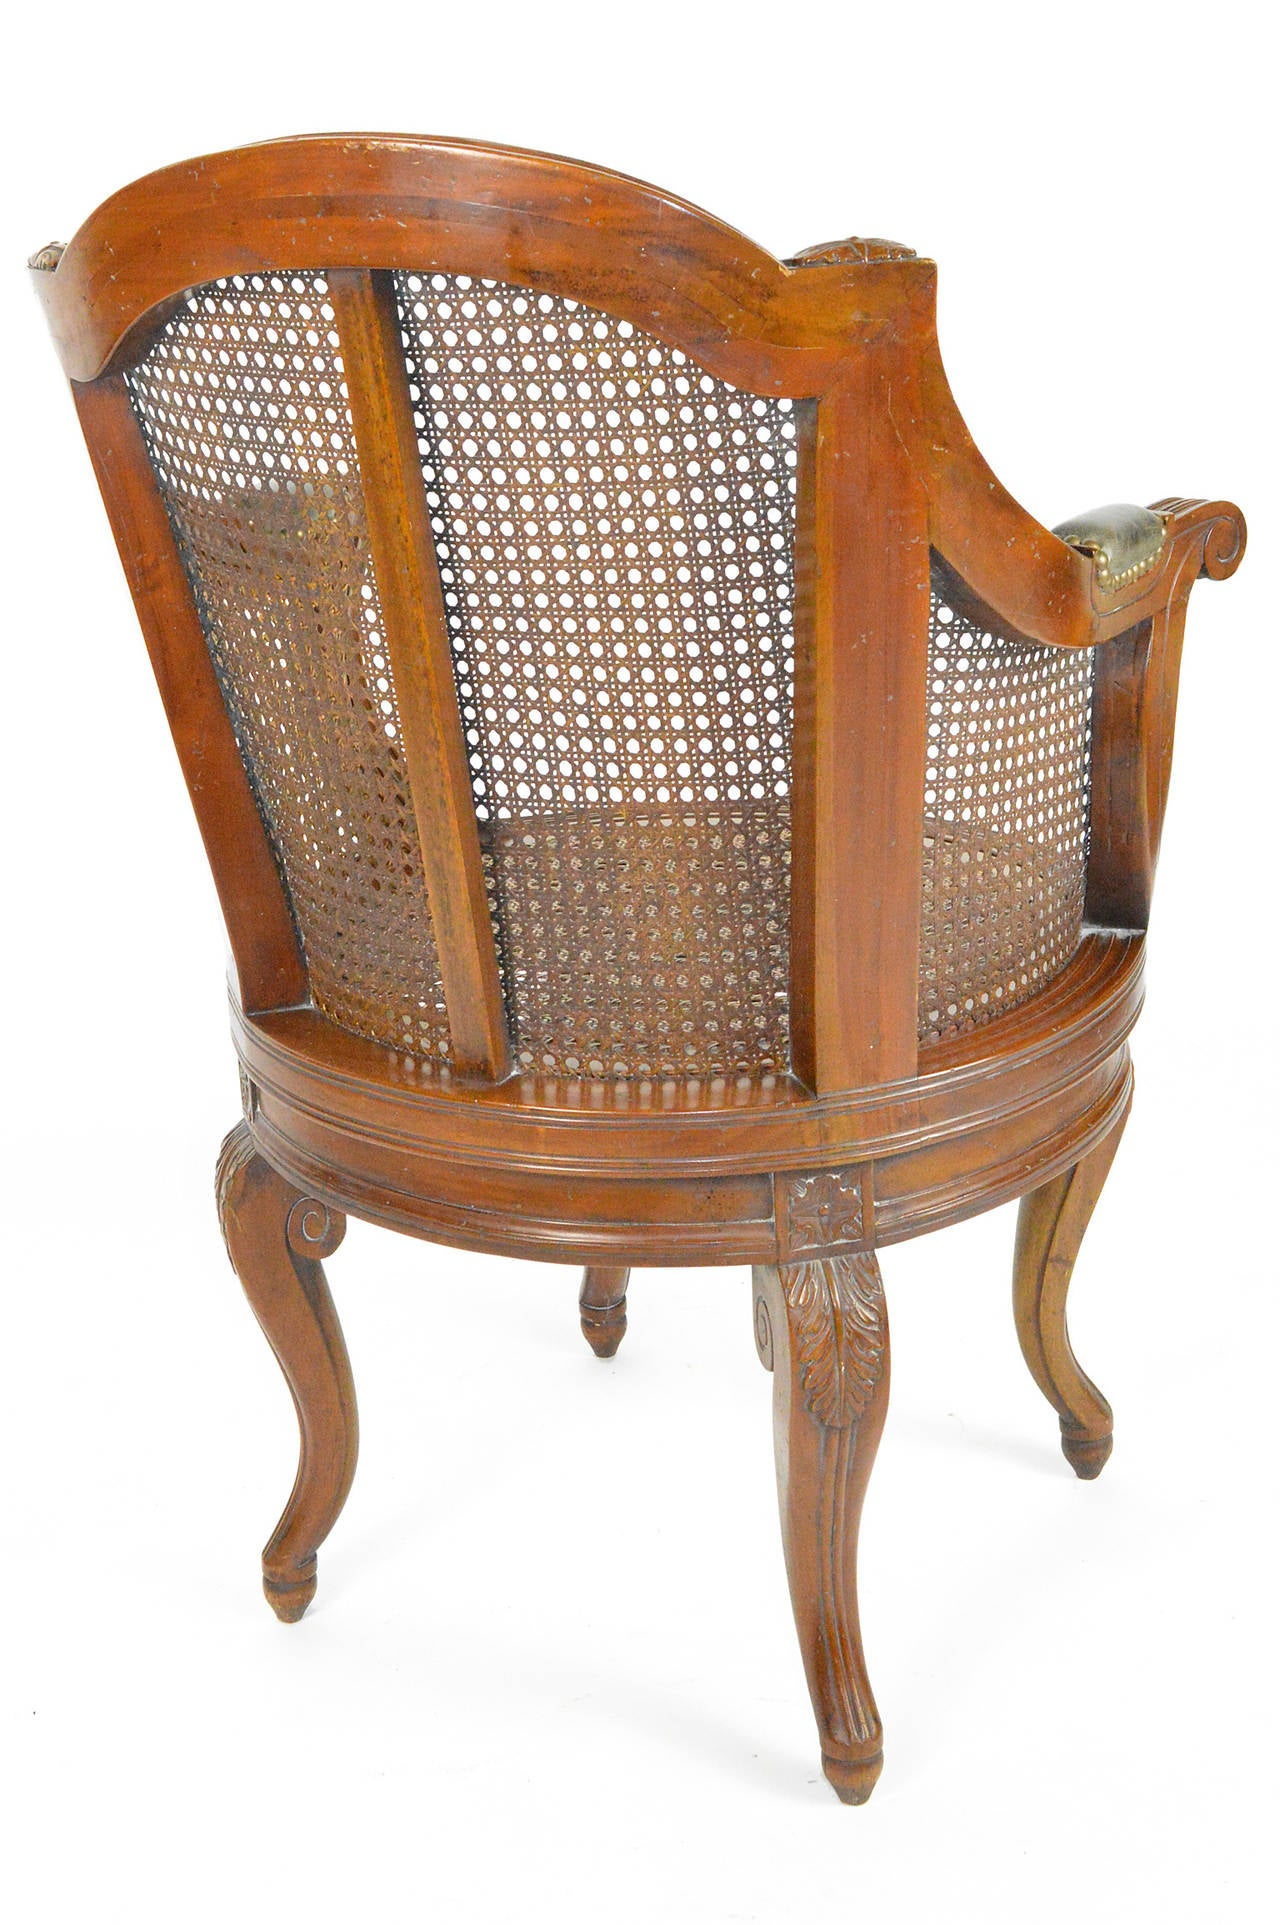 20th Century Louis XV Style Cane and Walnut Swivel Barrel Back Armchair For Sale